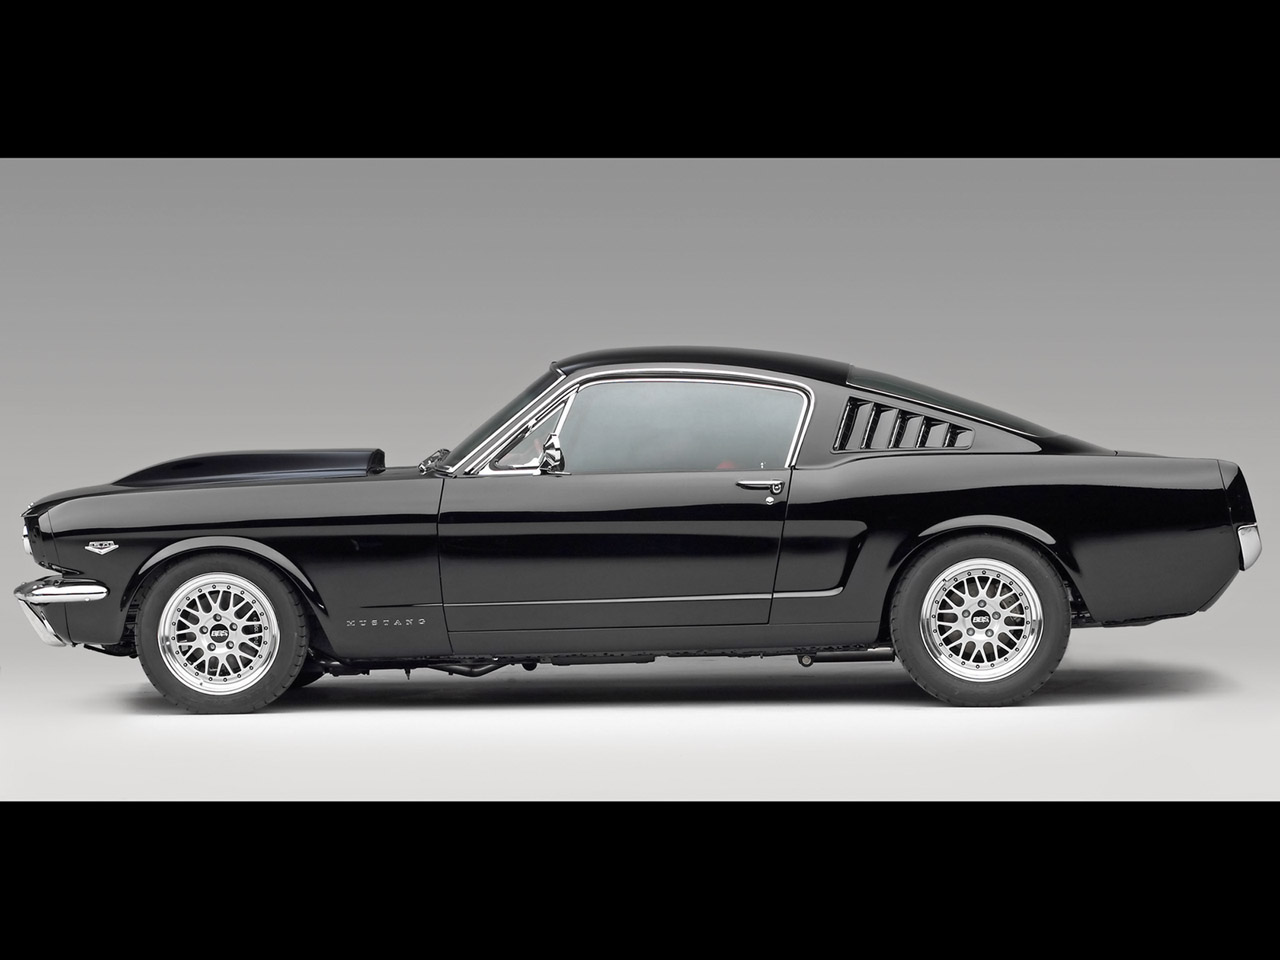 1966 Ford Mustang Fastback Black